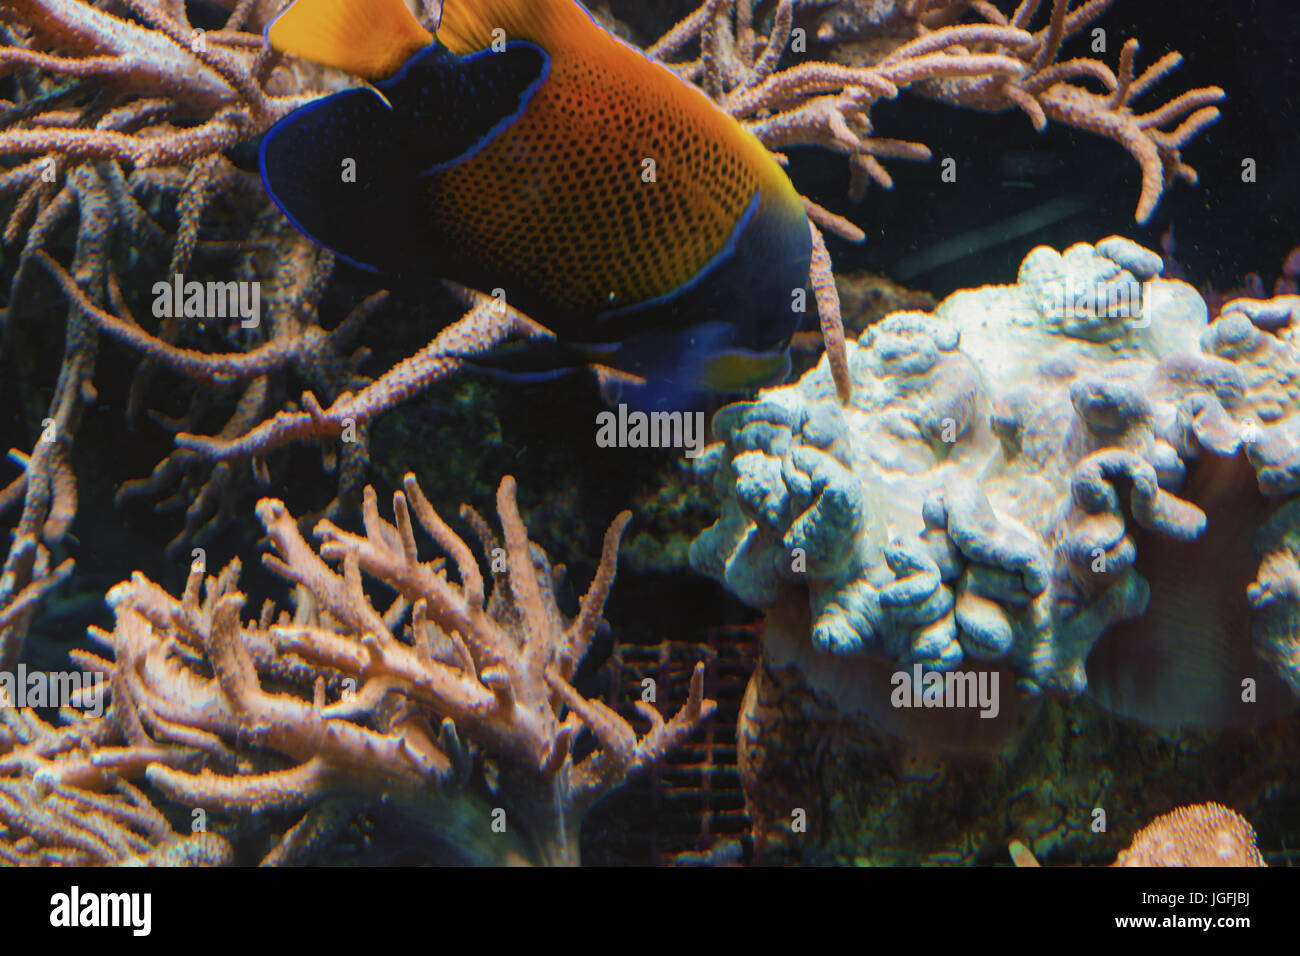 Underwater shot, fish in an aquarium with coral and sea anemone. - Stock Image